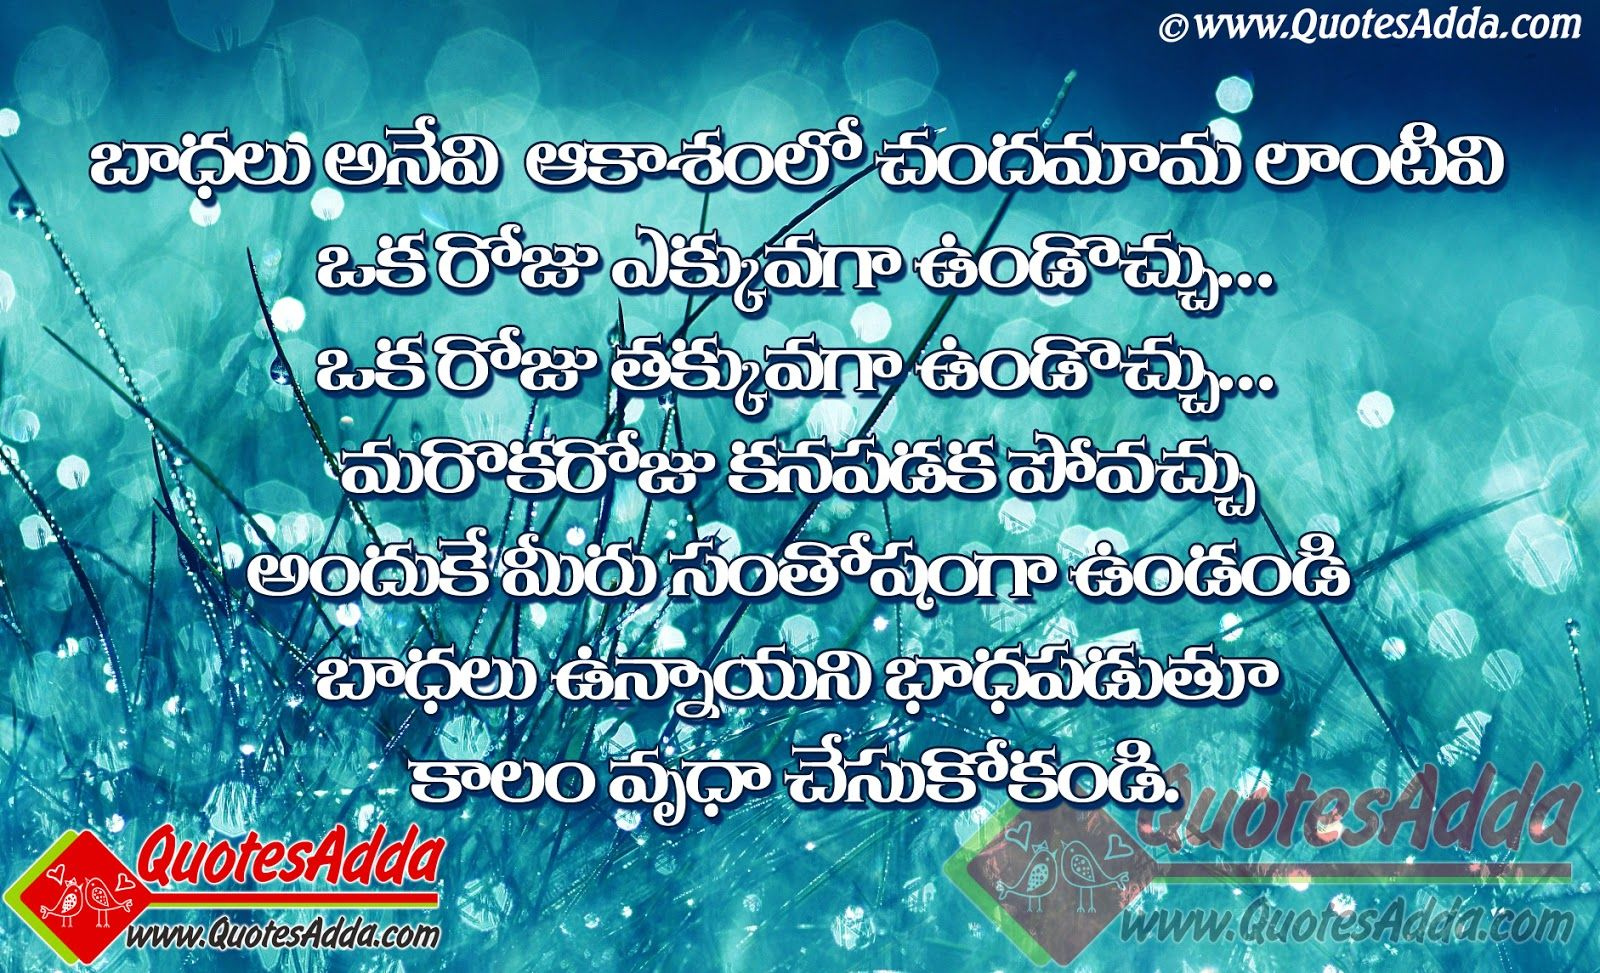 Life Quotes In Hindi For Facebook Best Telugu Nice Life Quotes